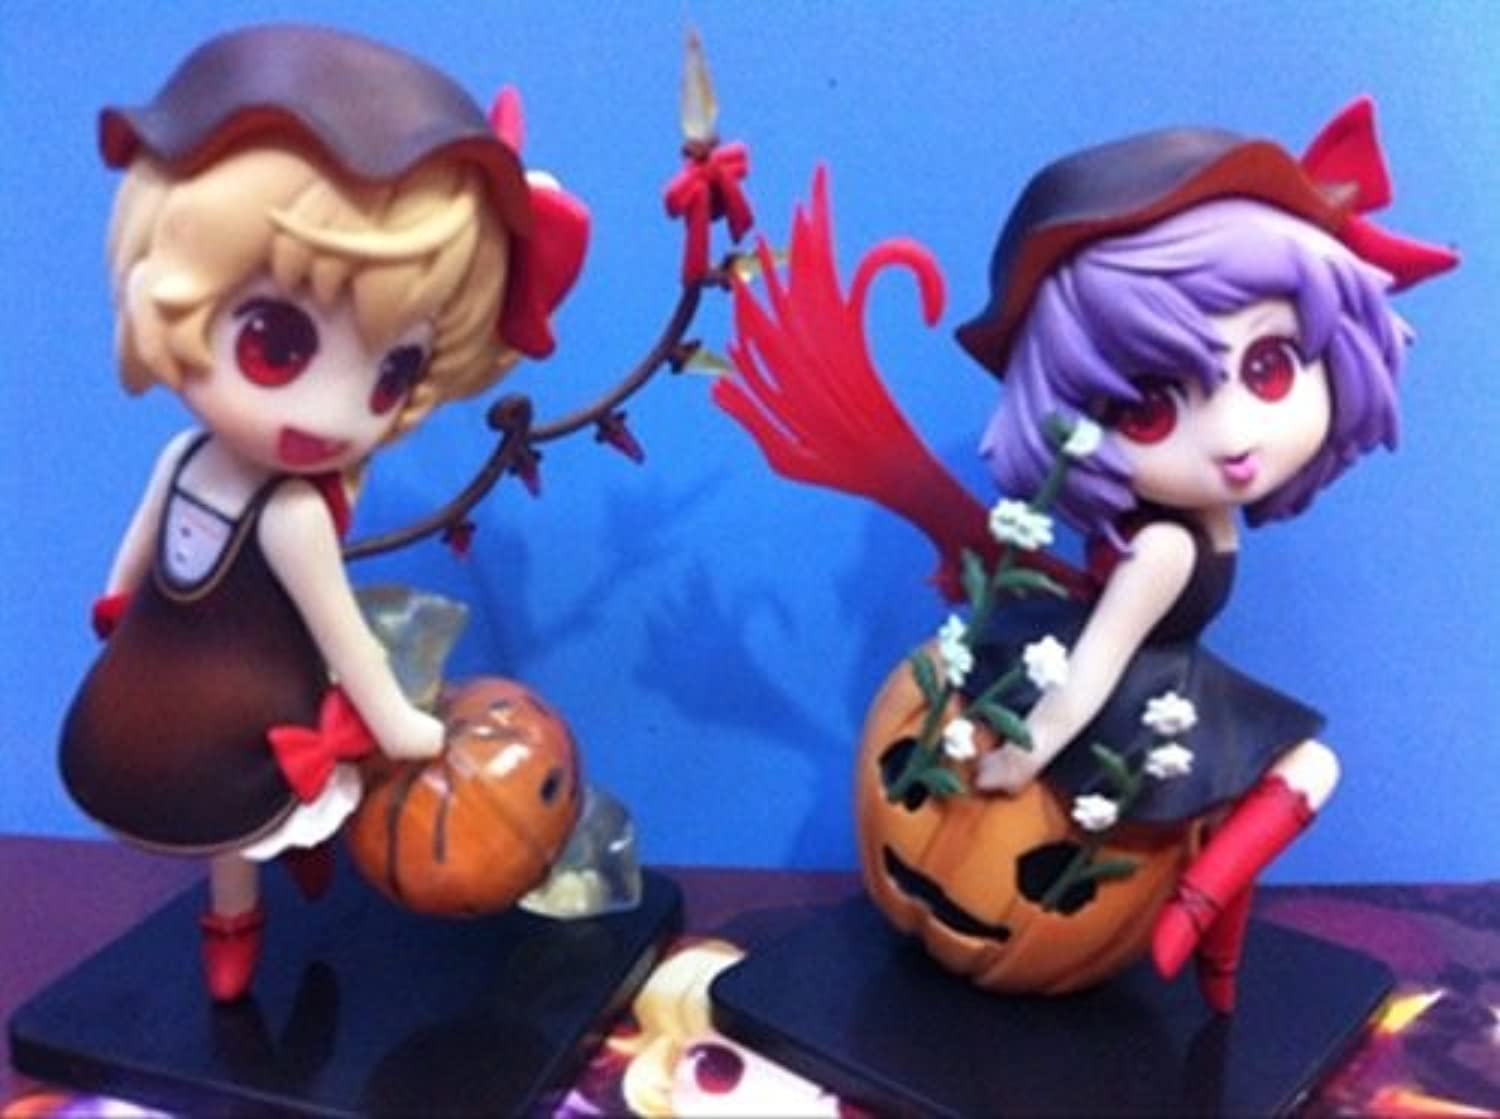 Allegro Huyer 12cm Japanese Anime Figure Touhou Project Remilia Scarlet Flandre Scarlet Halloween VER Action Figure Collectible Model Toys